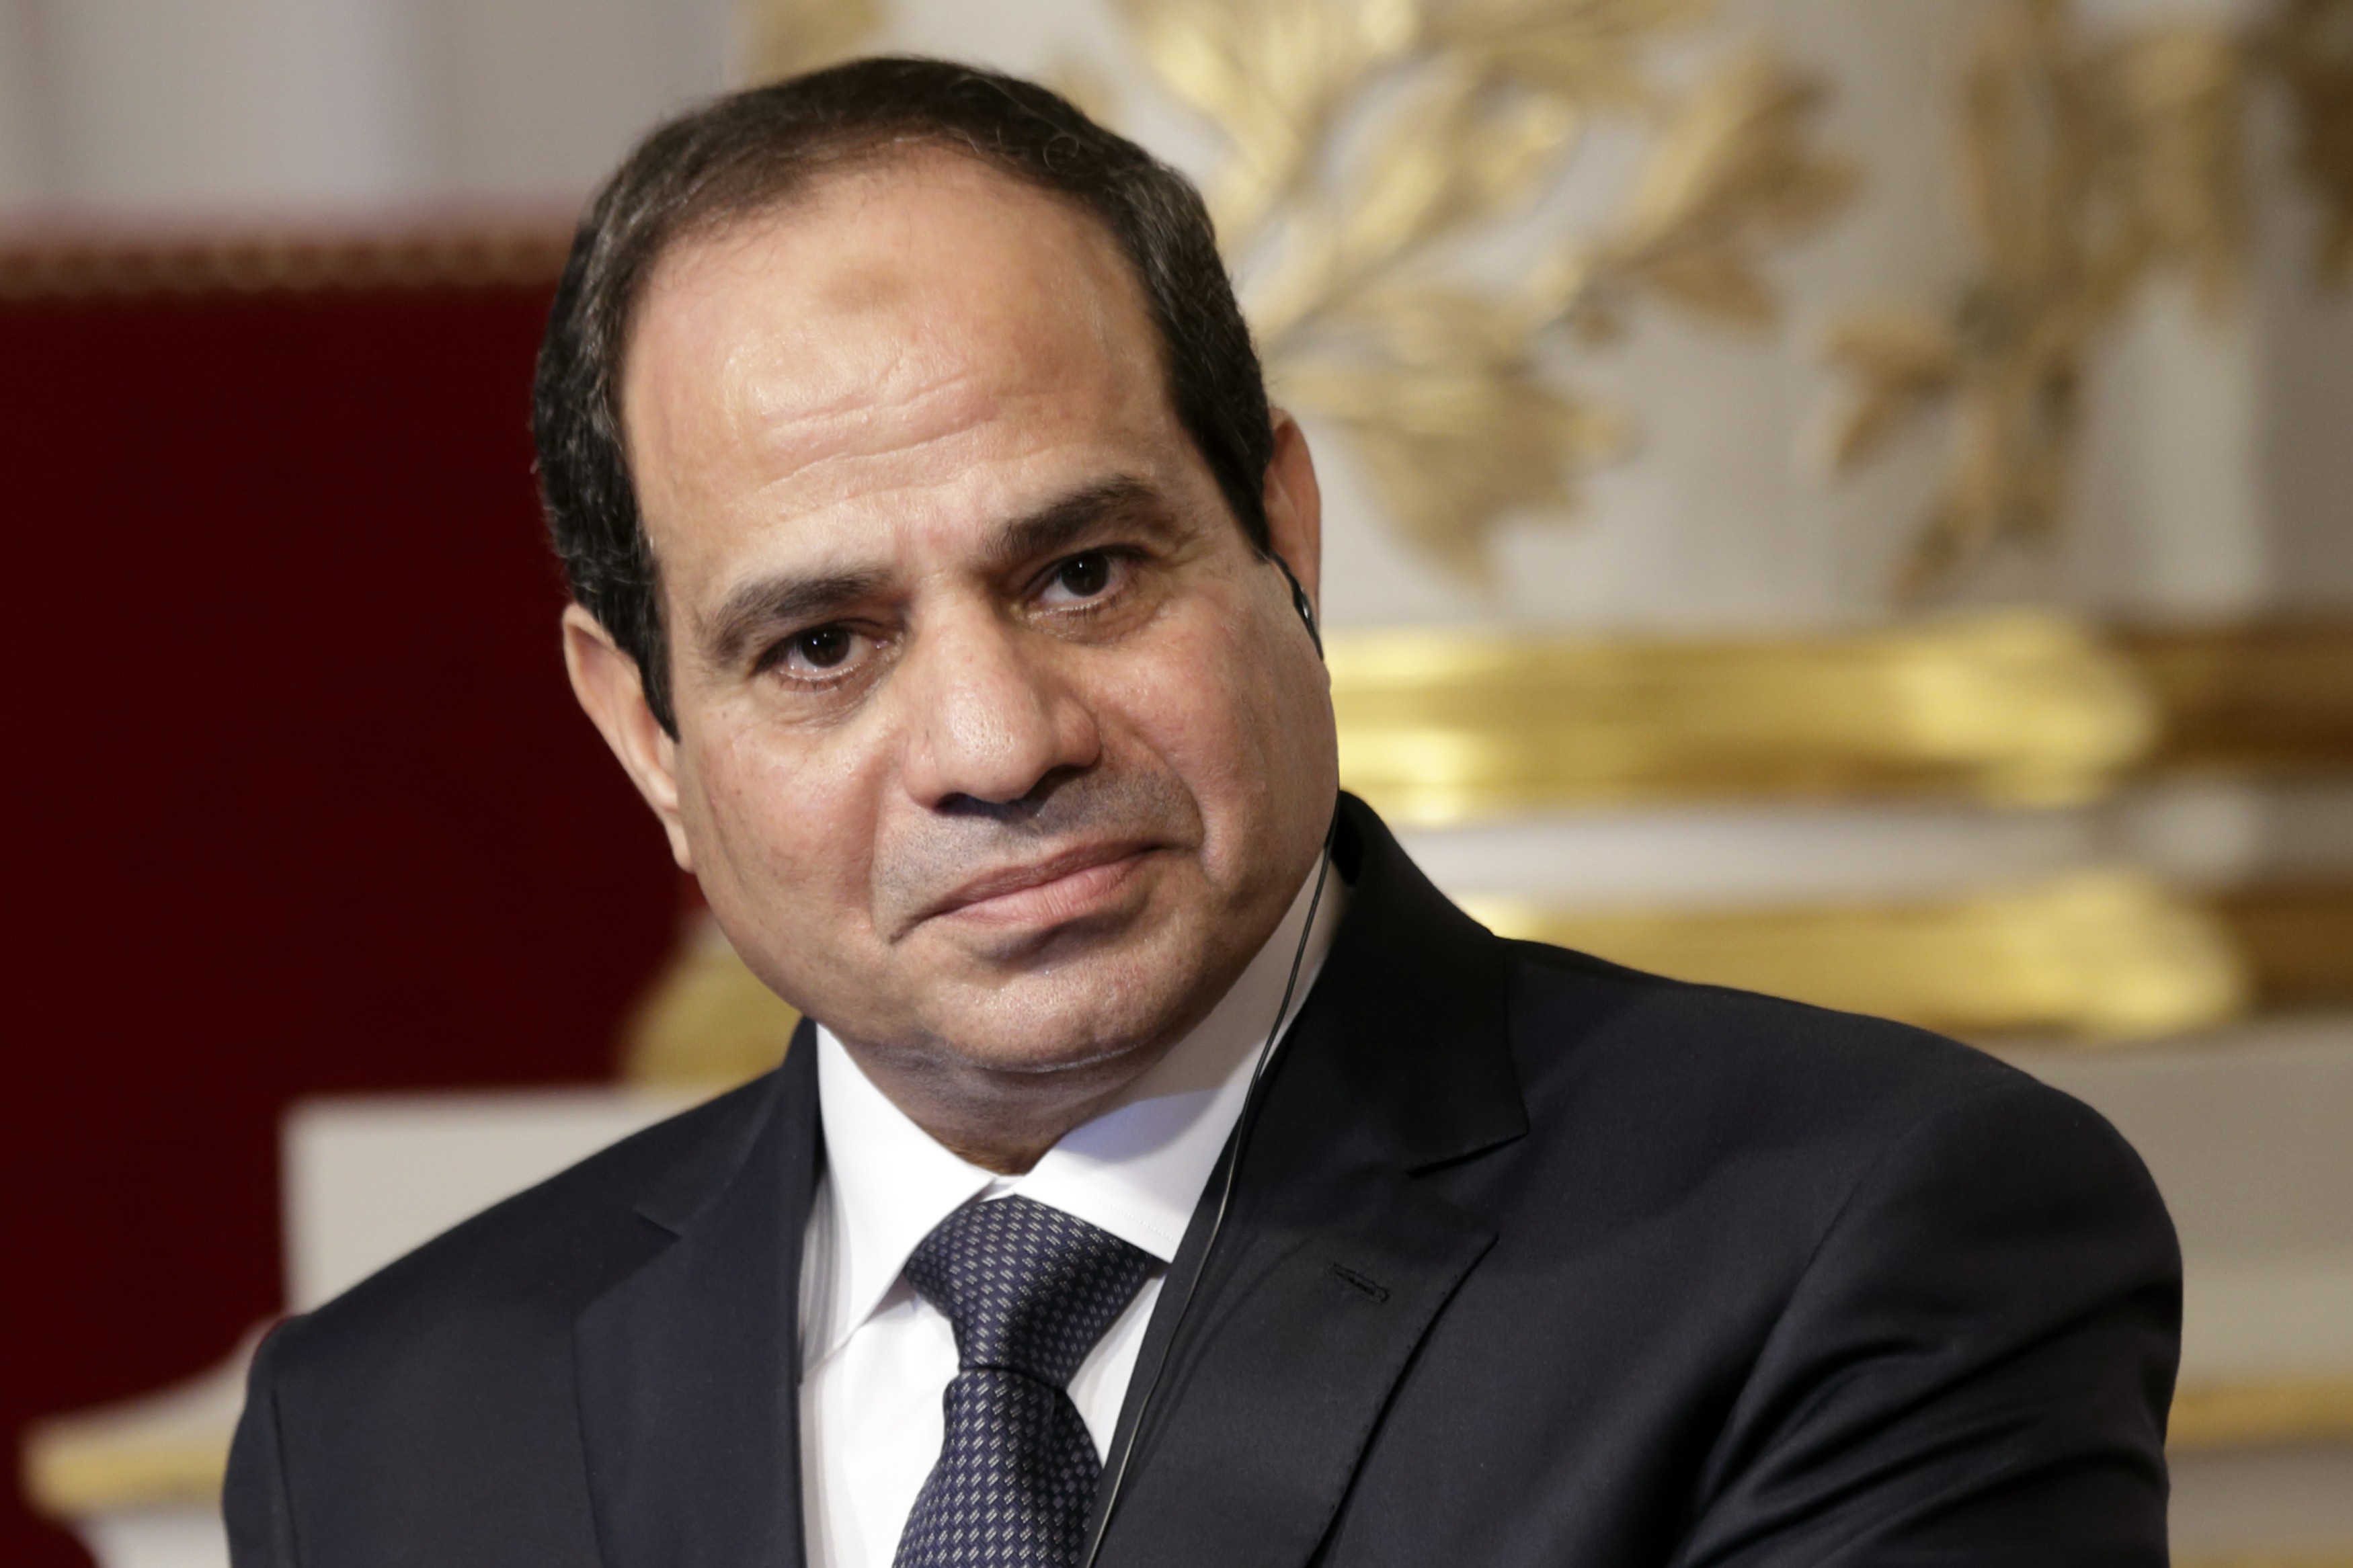 Egyptian President Abdel Fattah al-Sisi delivers a statement following a meeting with French President Francois Hollande at the Elysee Palace in Paris, November 26, 2014. REUTERS/Philippe Wojazer (FRANCE - Tags: POLITICS HEADSHOT) - RTR4FORT